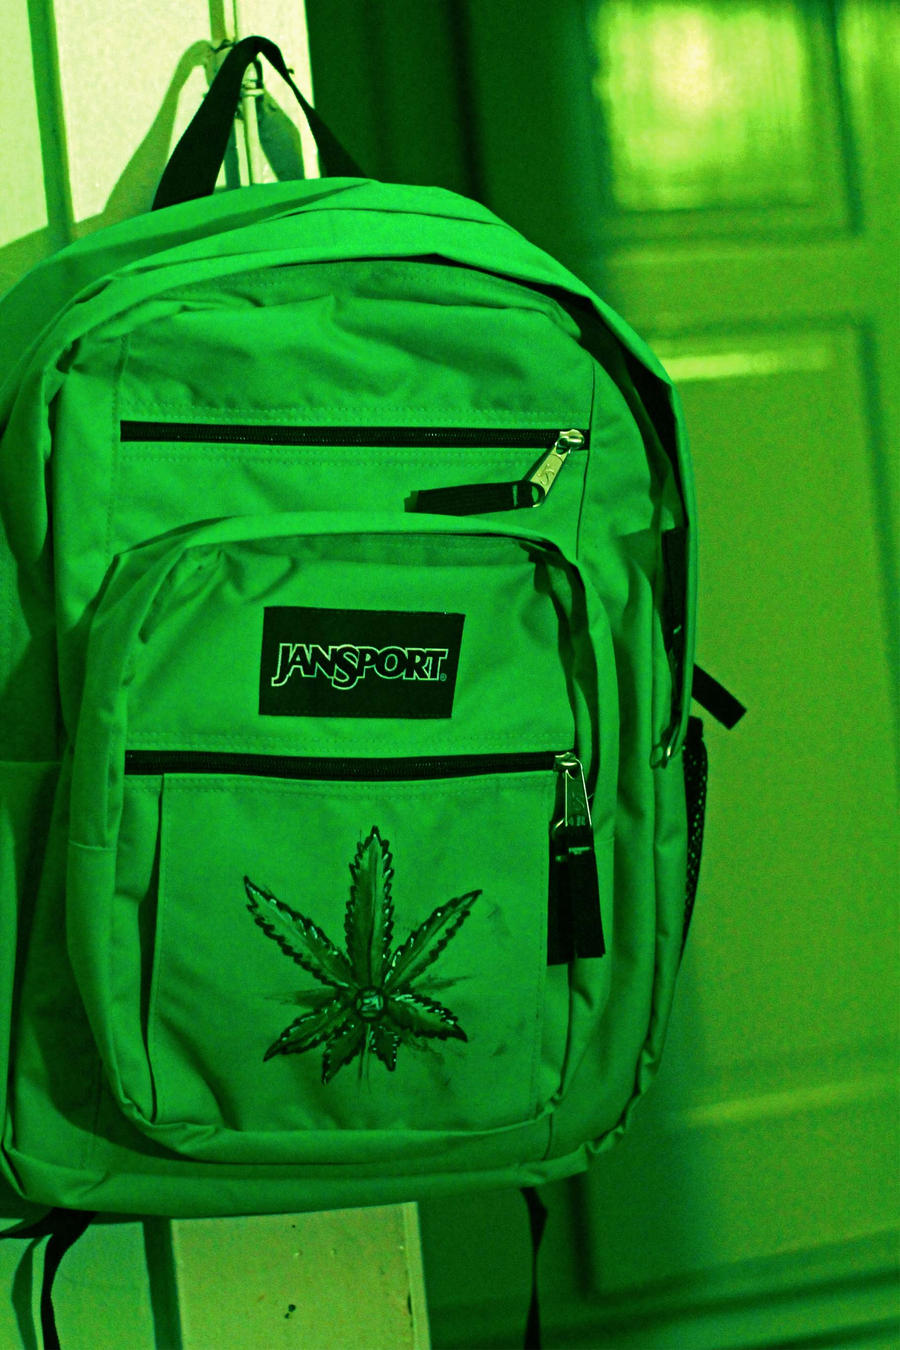 Personalized Jansport Backpacks - Crazy Backpacks